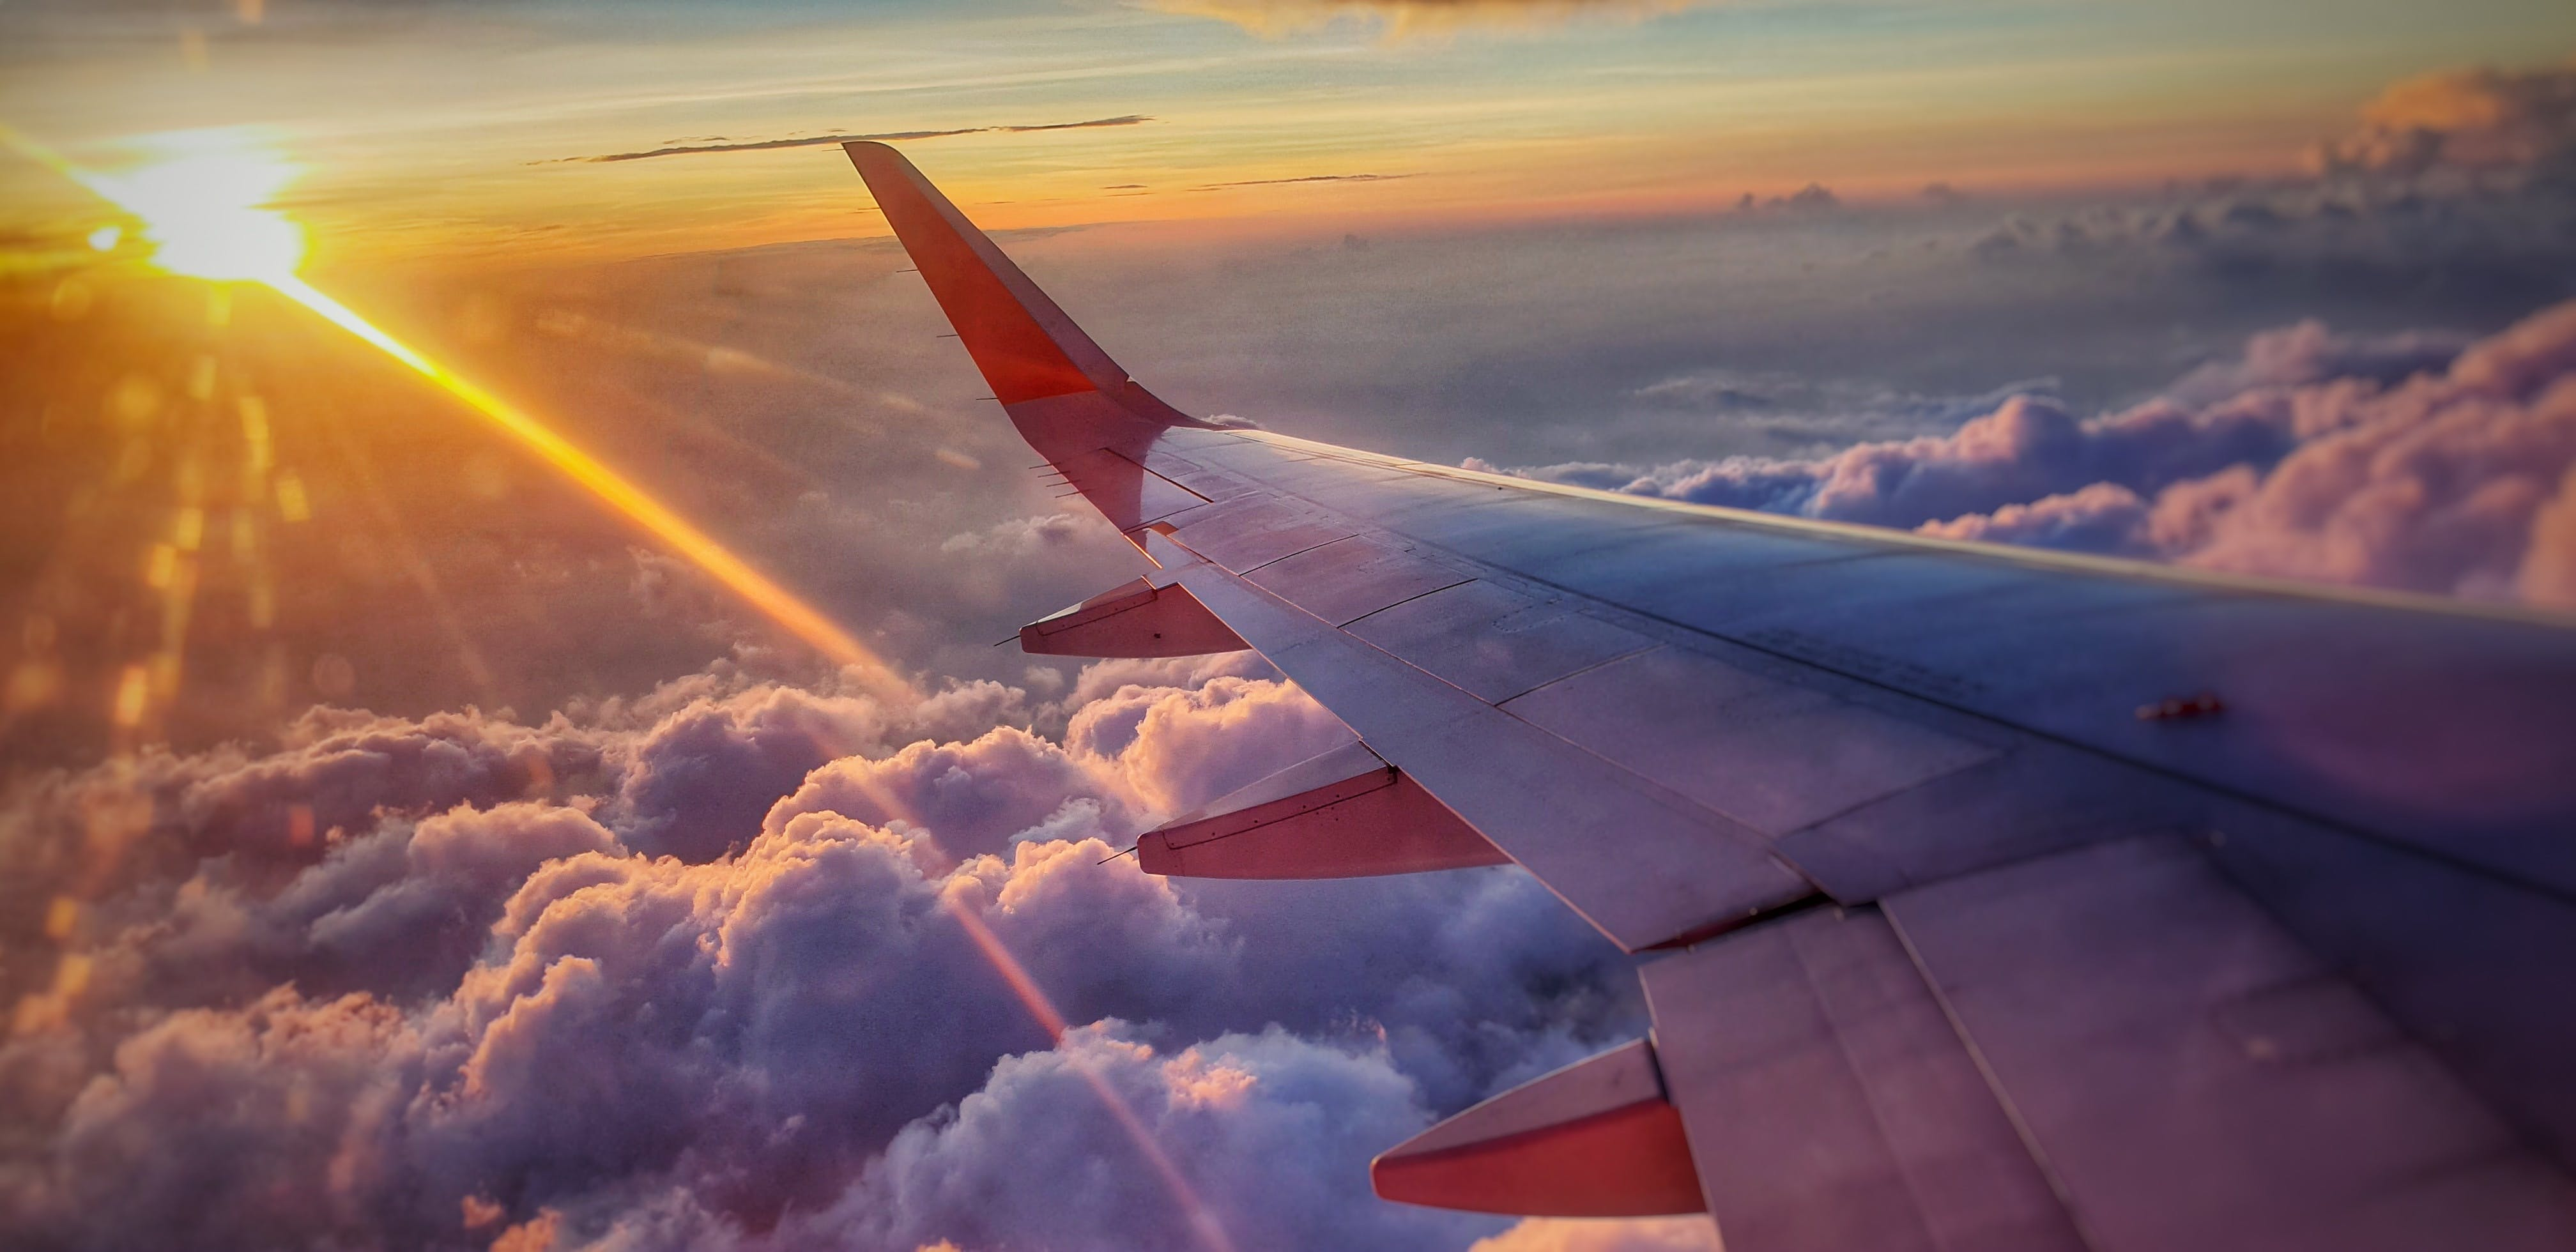 Airplane wing over clouds and sunset